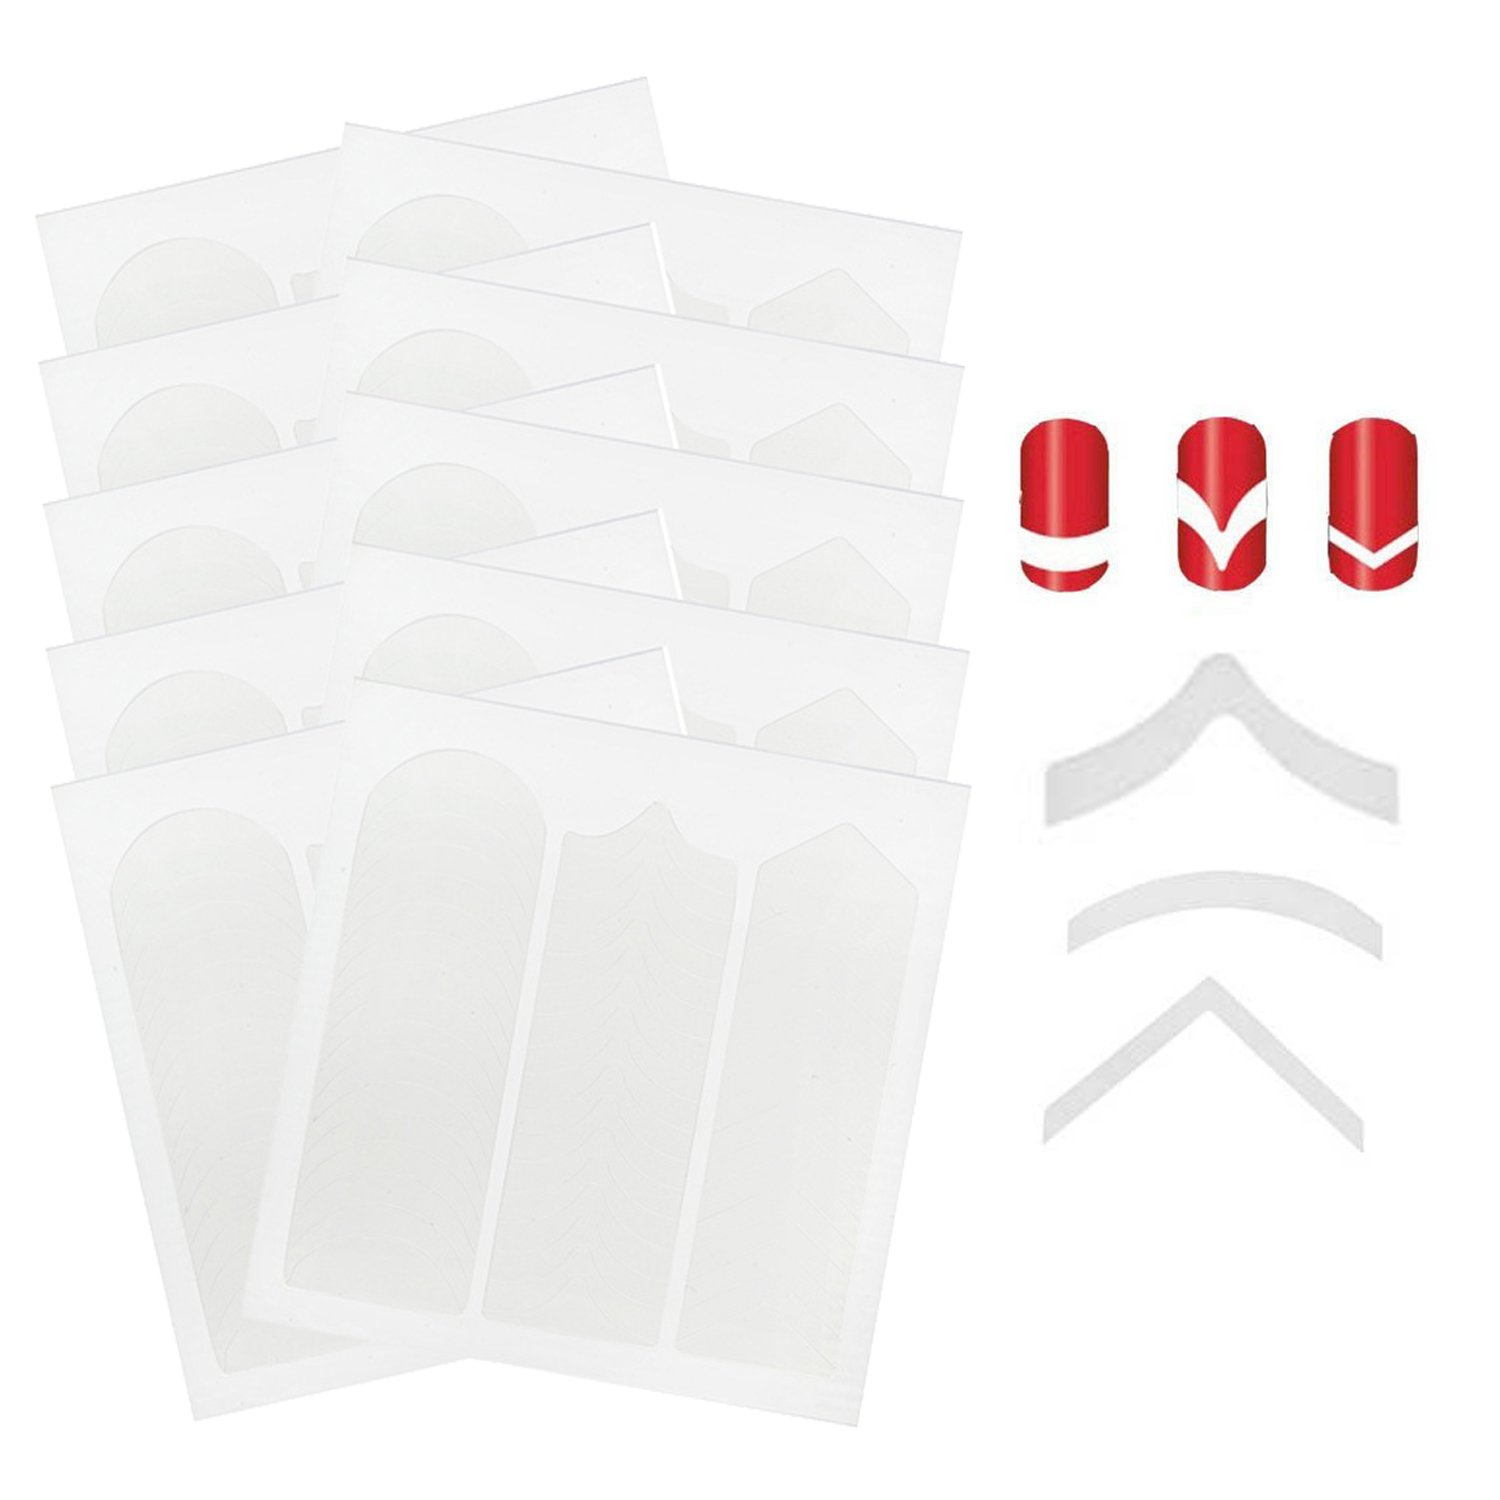 Amazing Value 10pcs Professional Nail Art Salon Quality Cards Each With 51pcs White Guides Stickers / Strips In 3 Different Shapes For French Nails Manicure And Lines Designs / Patterns Application By VAGA